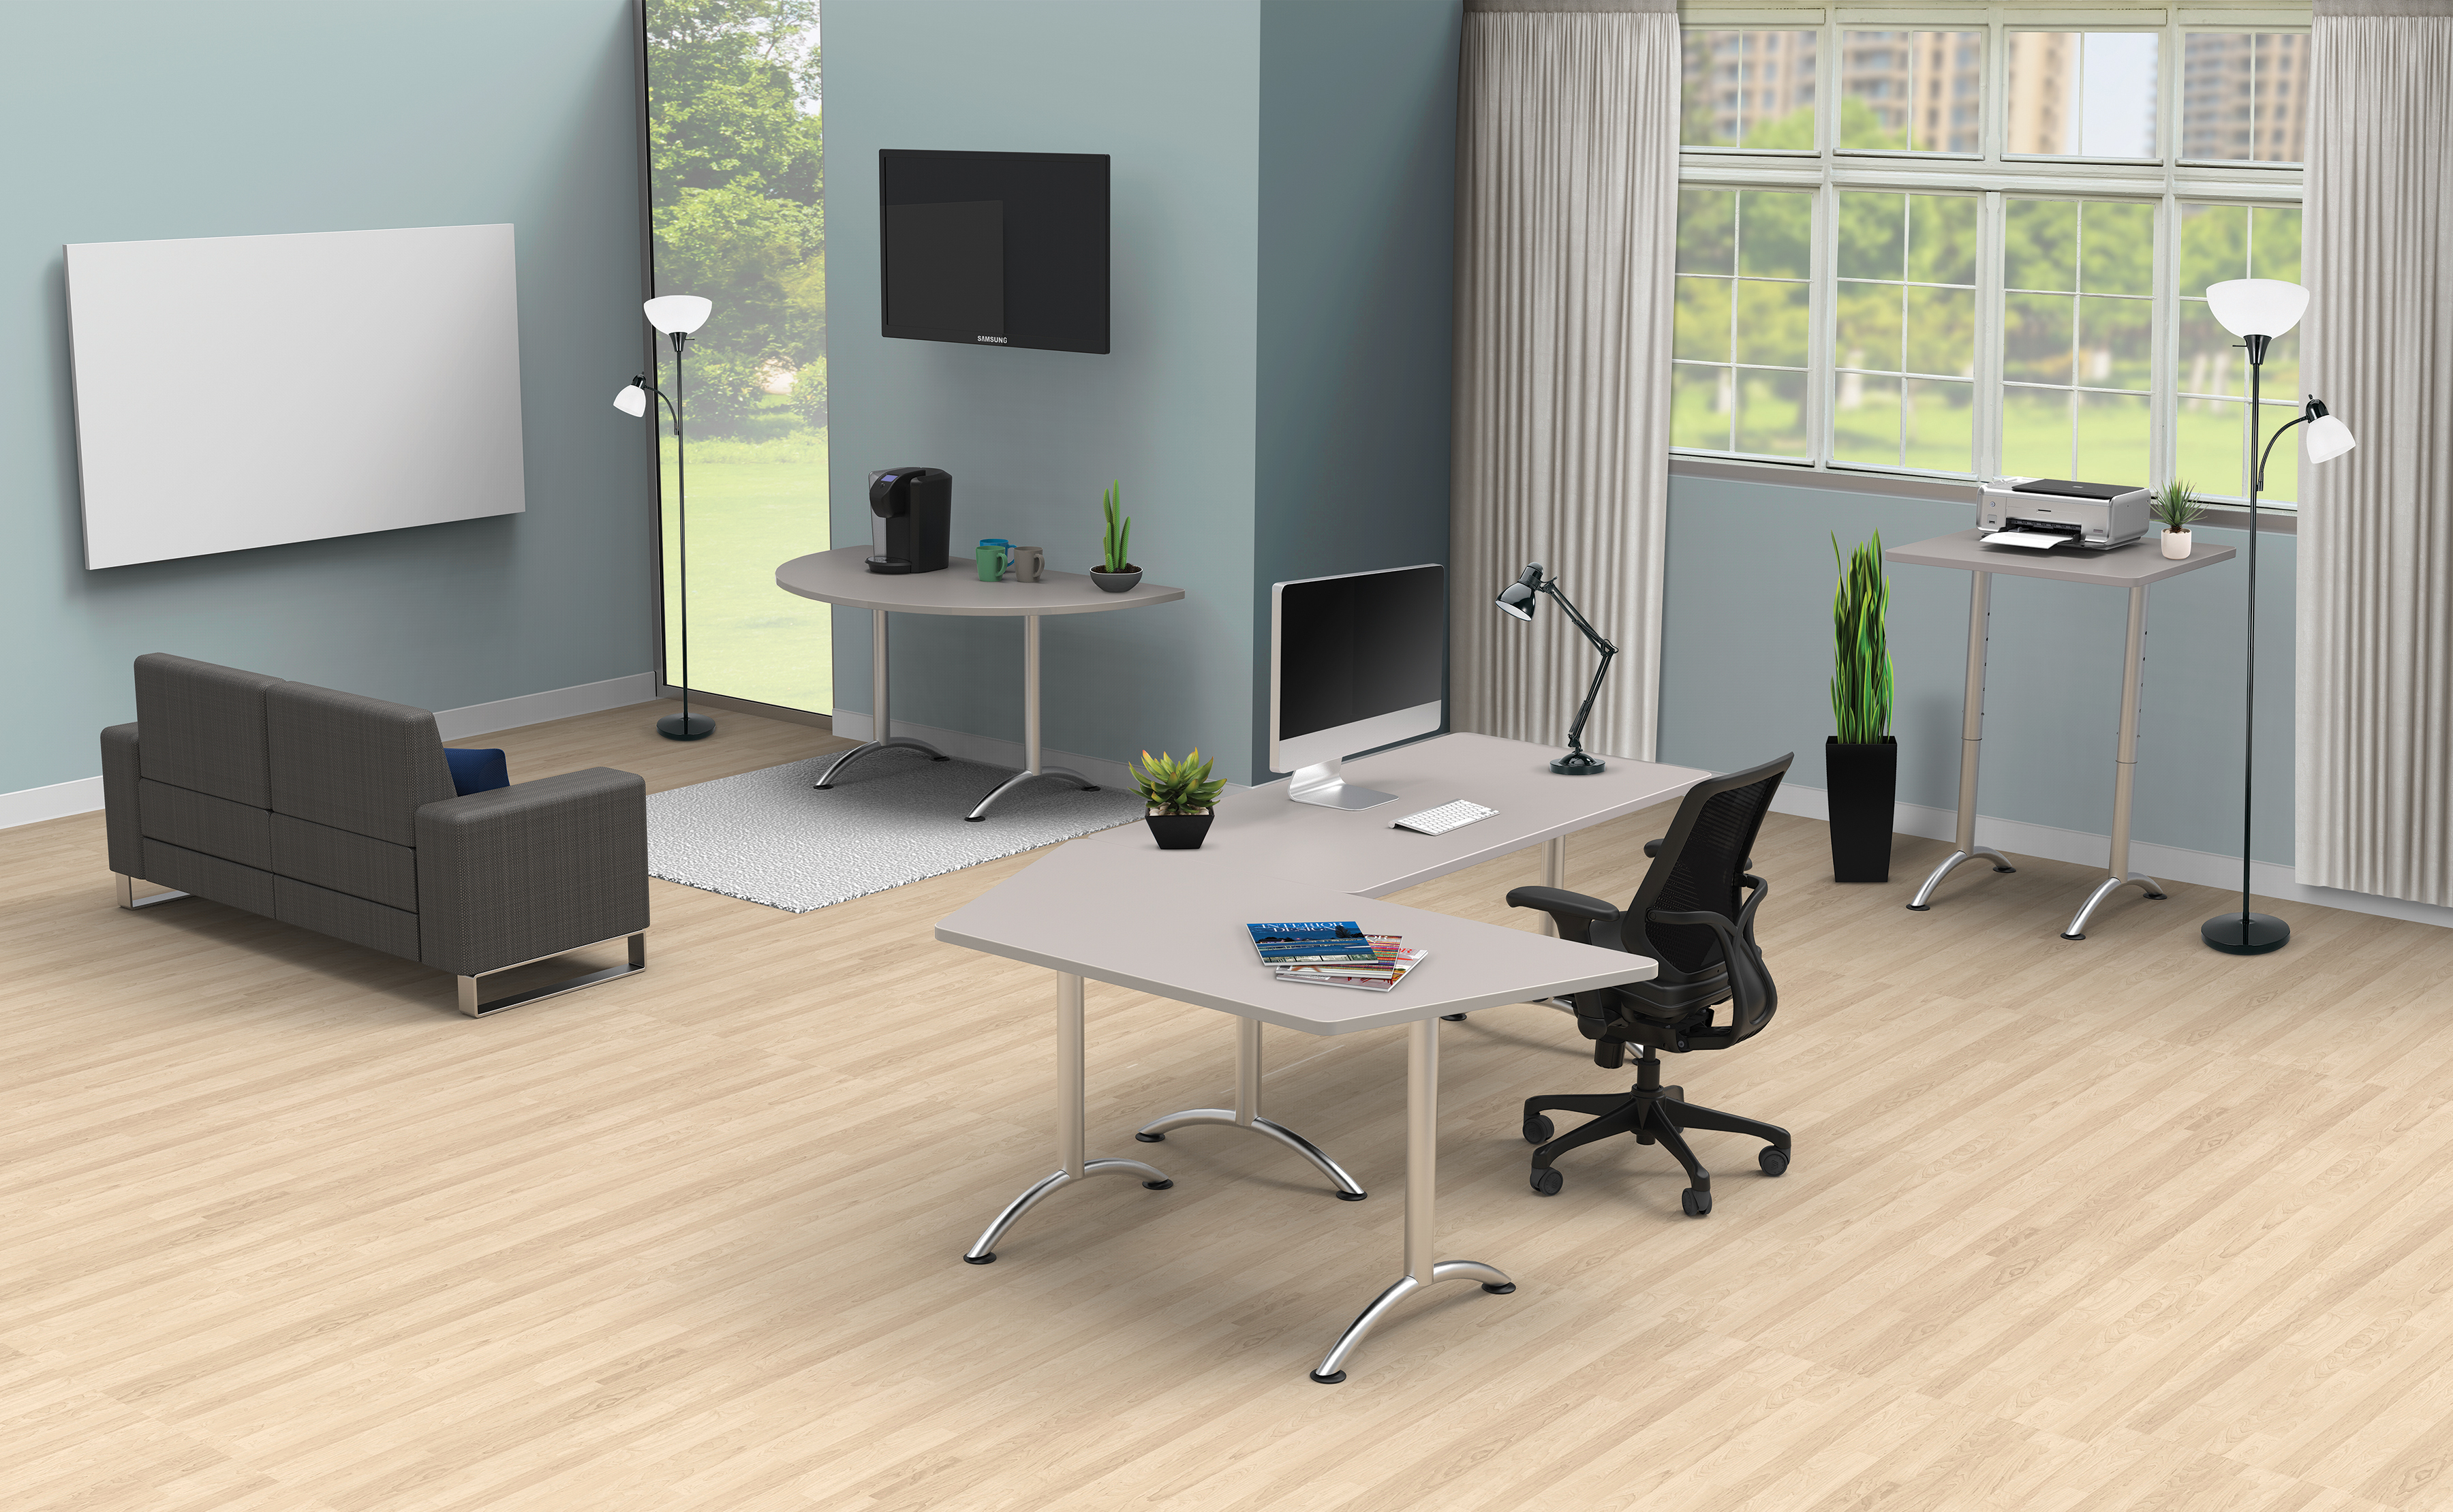 Workpro Chair Office Depot Inc Launches Exclusive New Workpro Flex